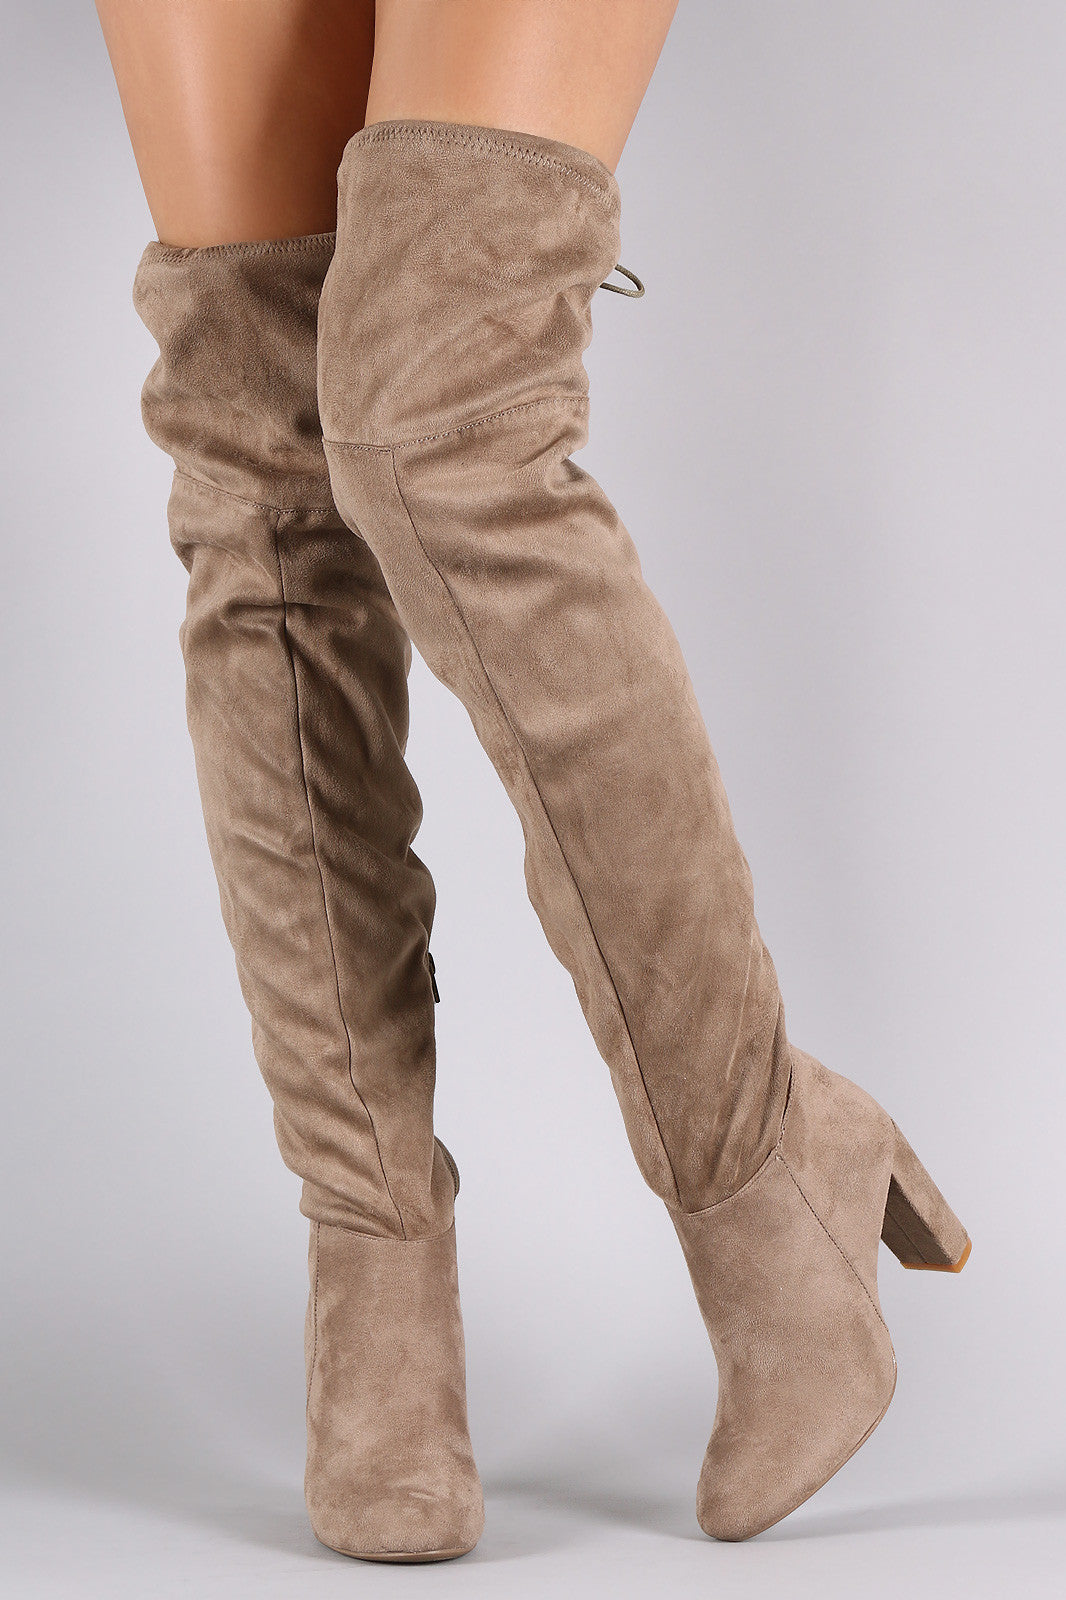 Suede Tassel Drawstring Chunky Heeled Over-The-Knee Boots - Thick 'N' Curvy Shop - 2